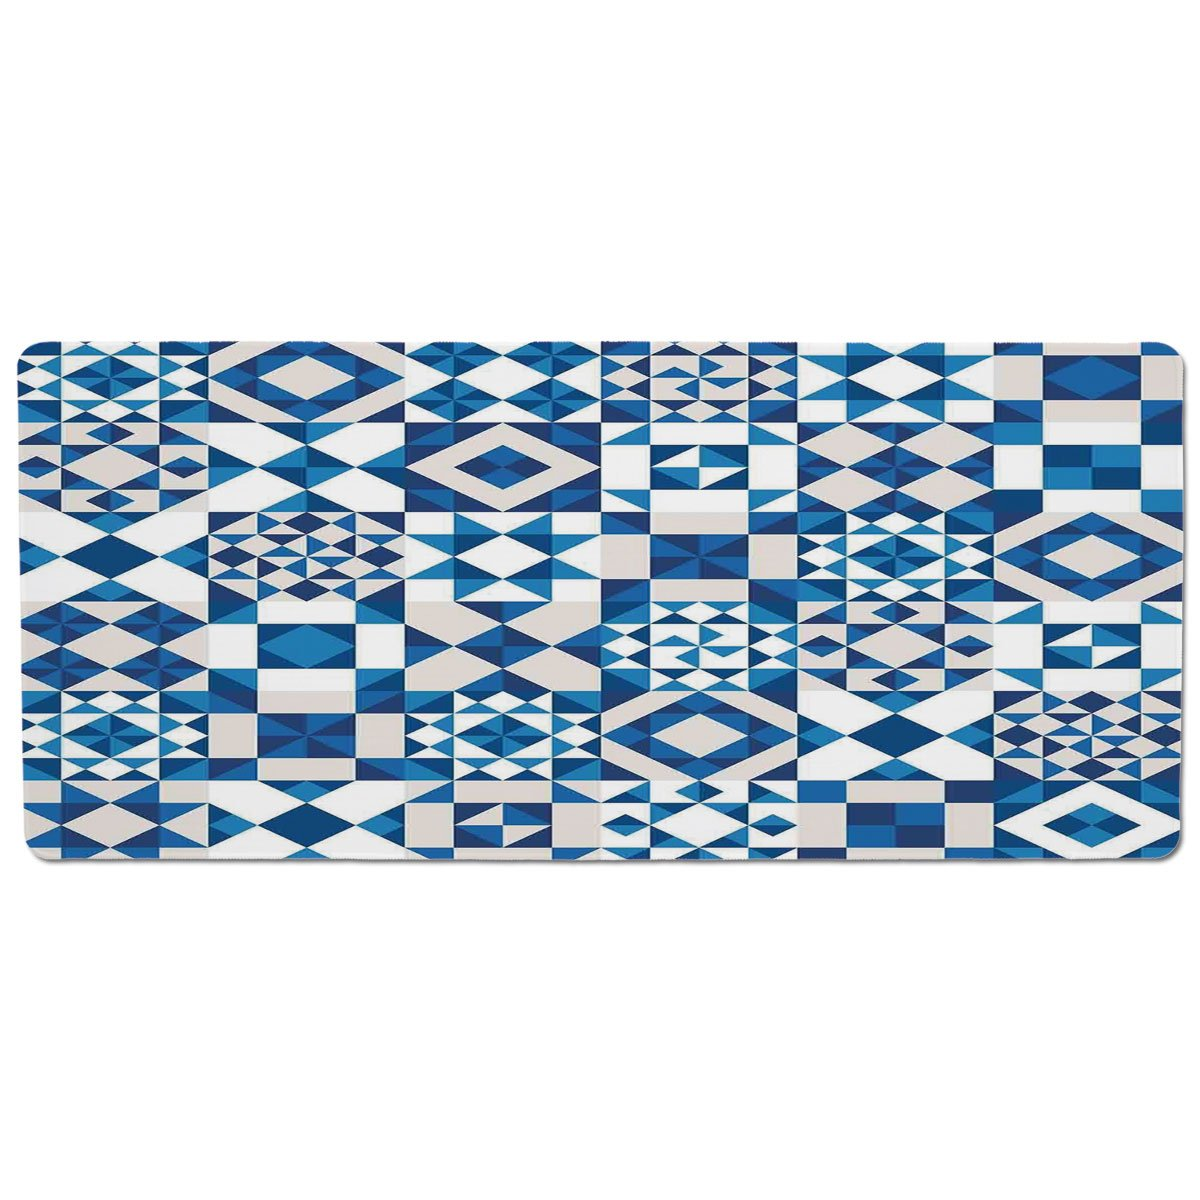 35.4\ iPrint Pet Mat for Food and Water,Navy bluee Decor,Abstract Geometric Potugal Style Ceramic Texture and Unusual Mosaic Patterns Artprint,White bluee,Rectangle Non-Slip Rubber Mat for Dogs and Cats